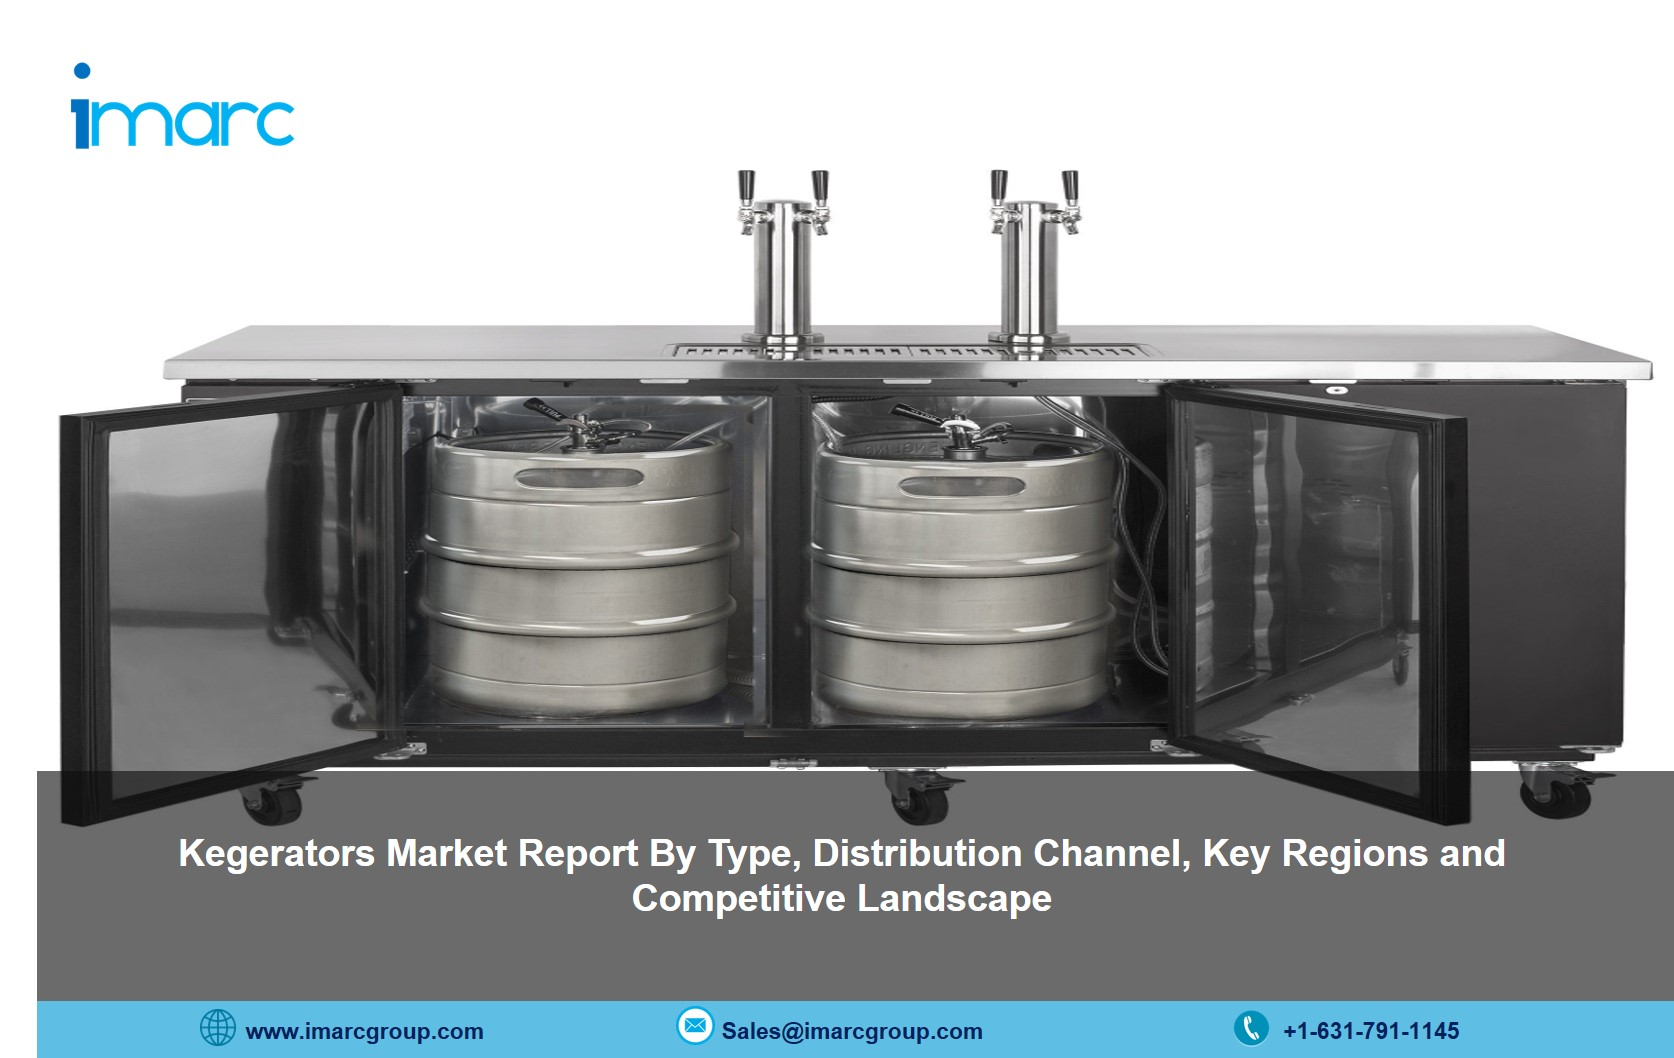 Kegerators Market 2021-26: Size. Share, Price and Industry Trends